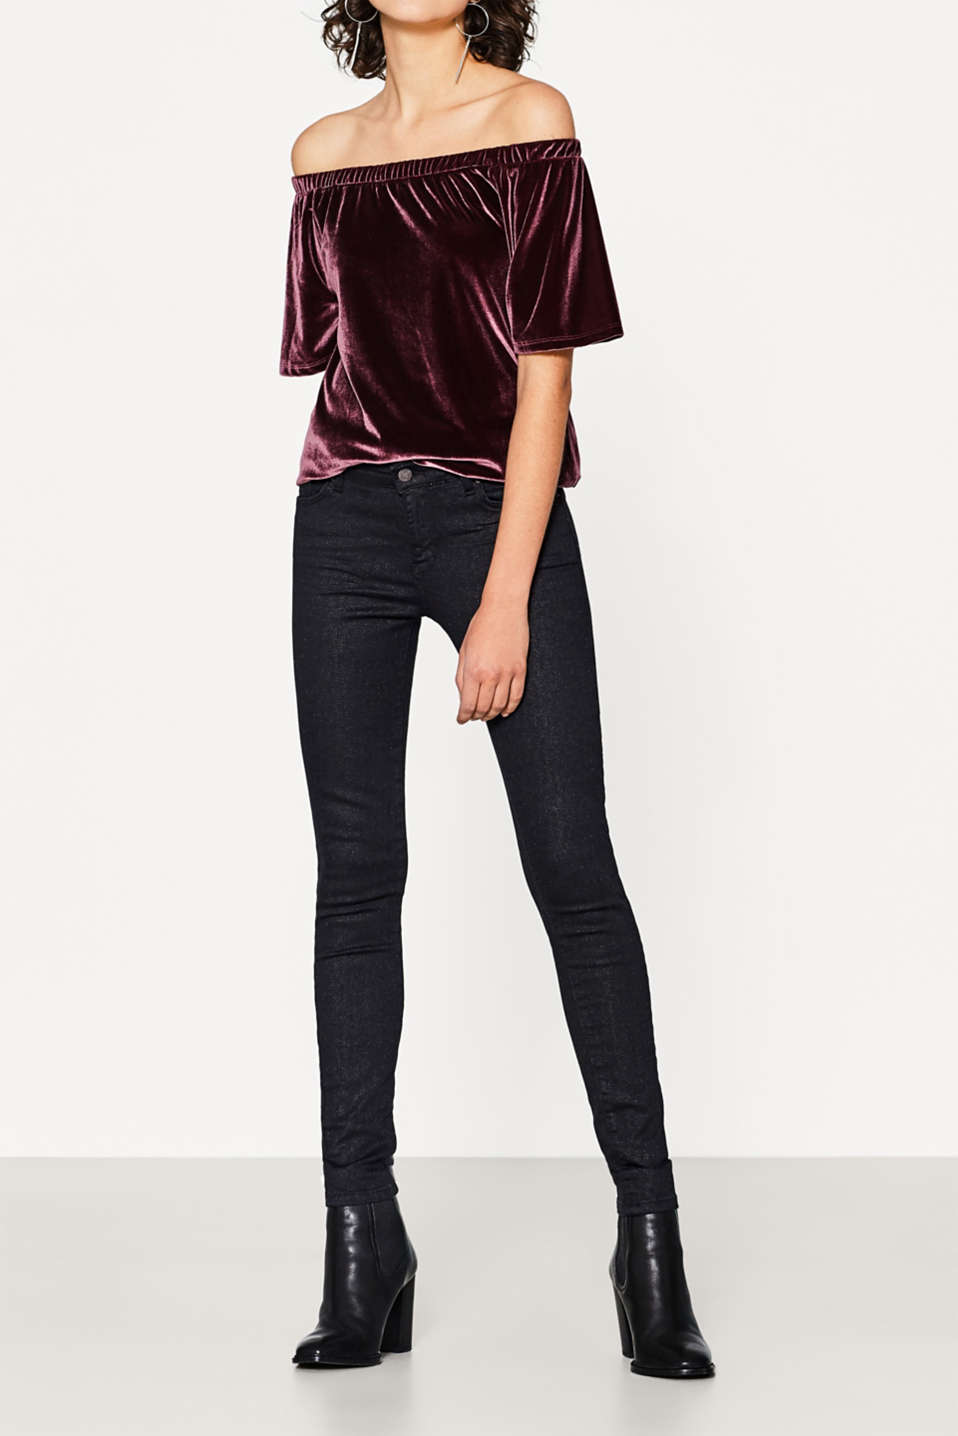 Esprit - Super stretch jeans with a glitter coating